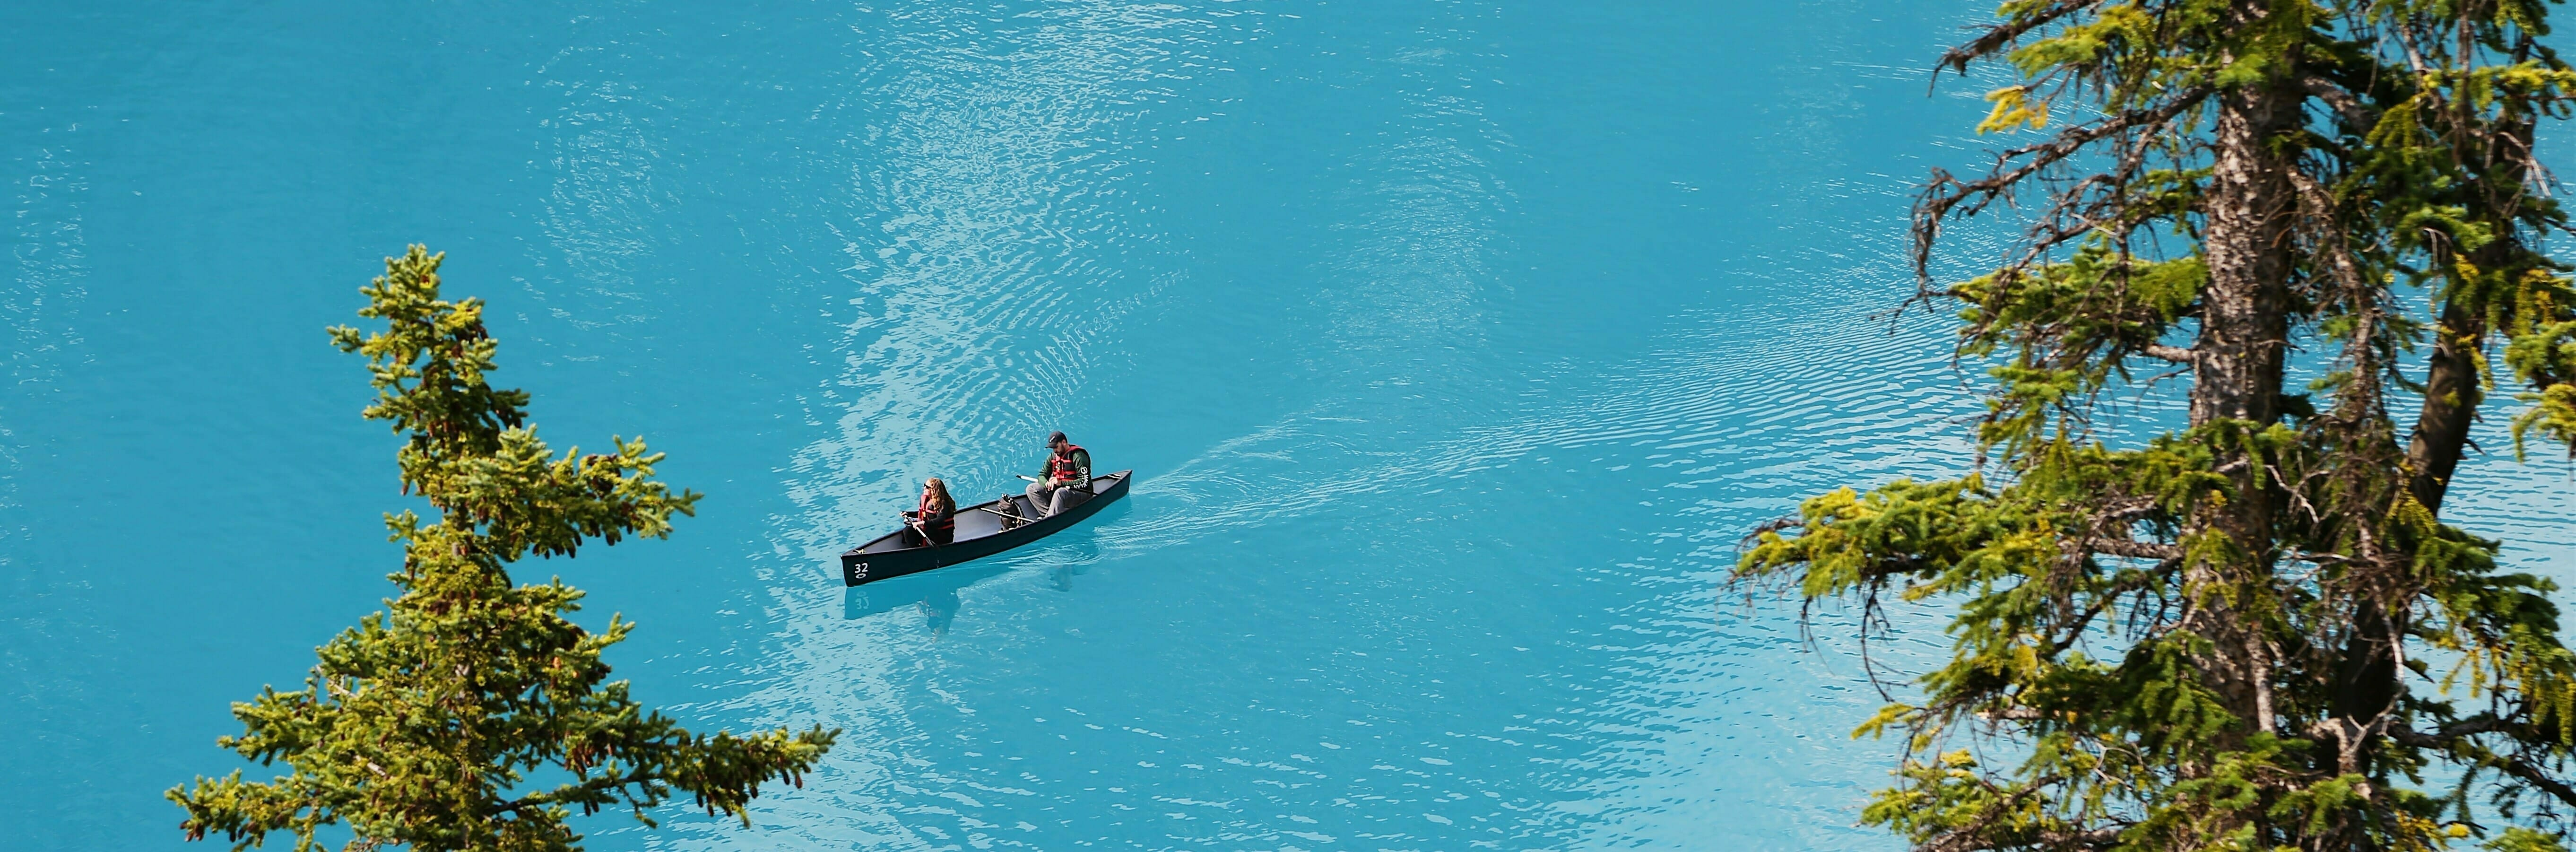 Overhead shot of People canoeing on bright blue lake